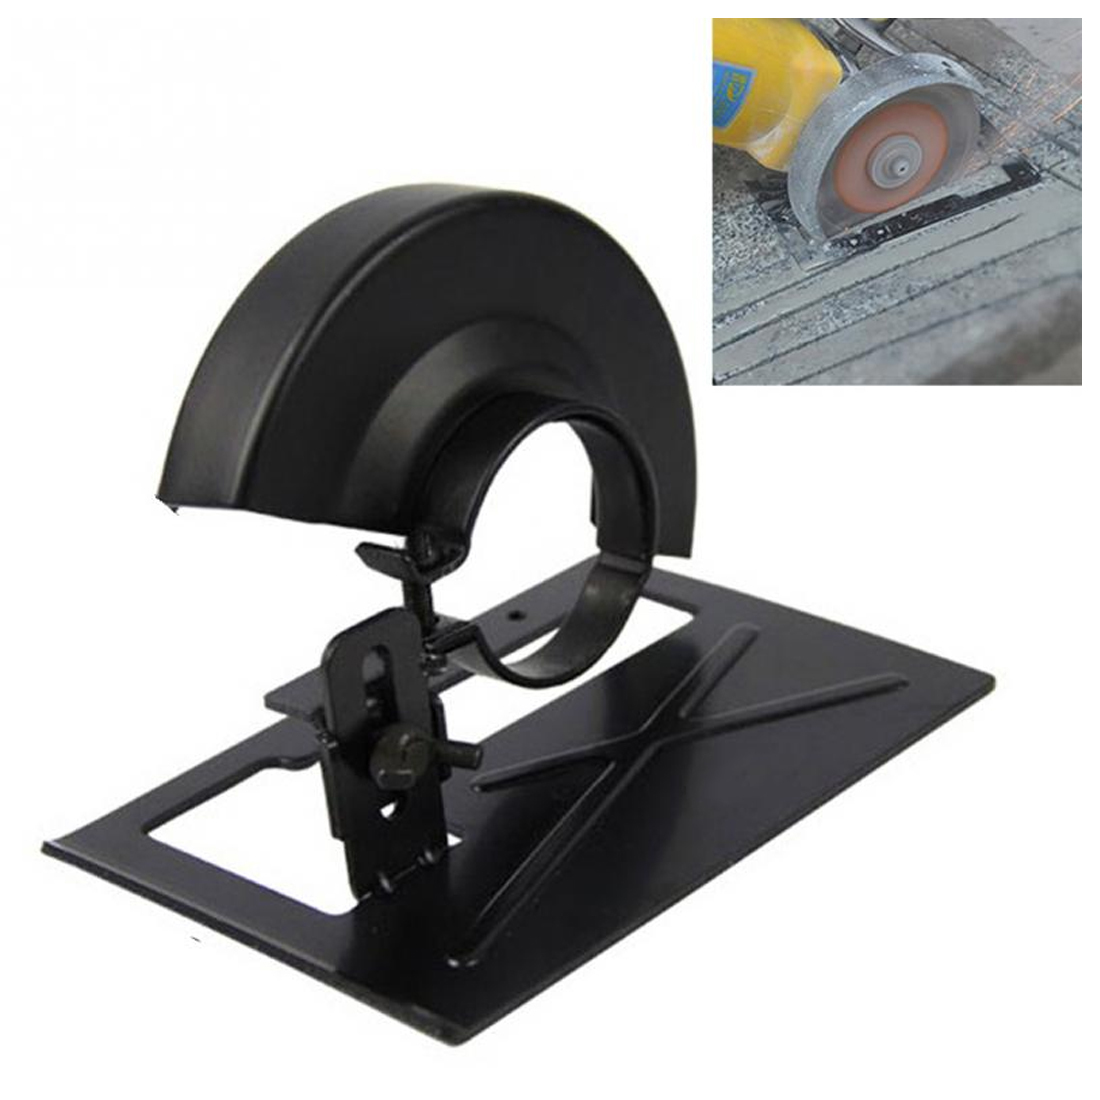 1pc Angle Grinder Dedicated Cutting Seat Stand Machine Bracket Rod Table+1pc Cover Shield Safety Woodworking Tools